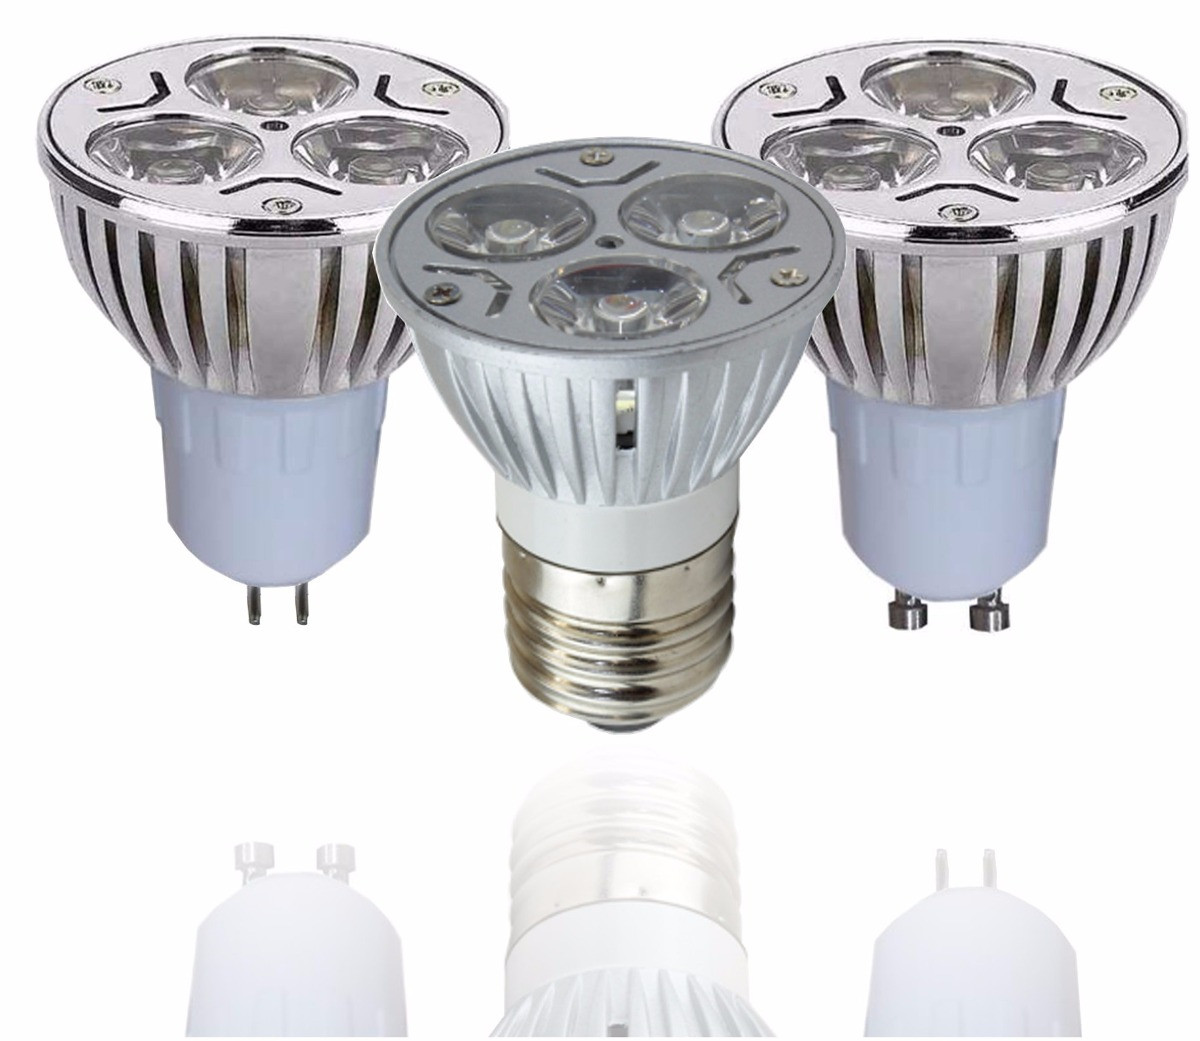 Focos Led Empotrables Extraplanos Contemporáneo Foco Led Dicroico E27 Y Mr16 De 3w 127 Watts $ 35 00 En Of Focos Led Empotrables Extraplanos Único Foco De Leds Modelo Fat